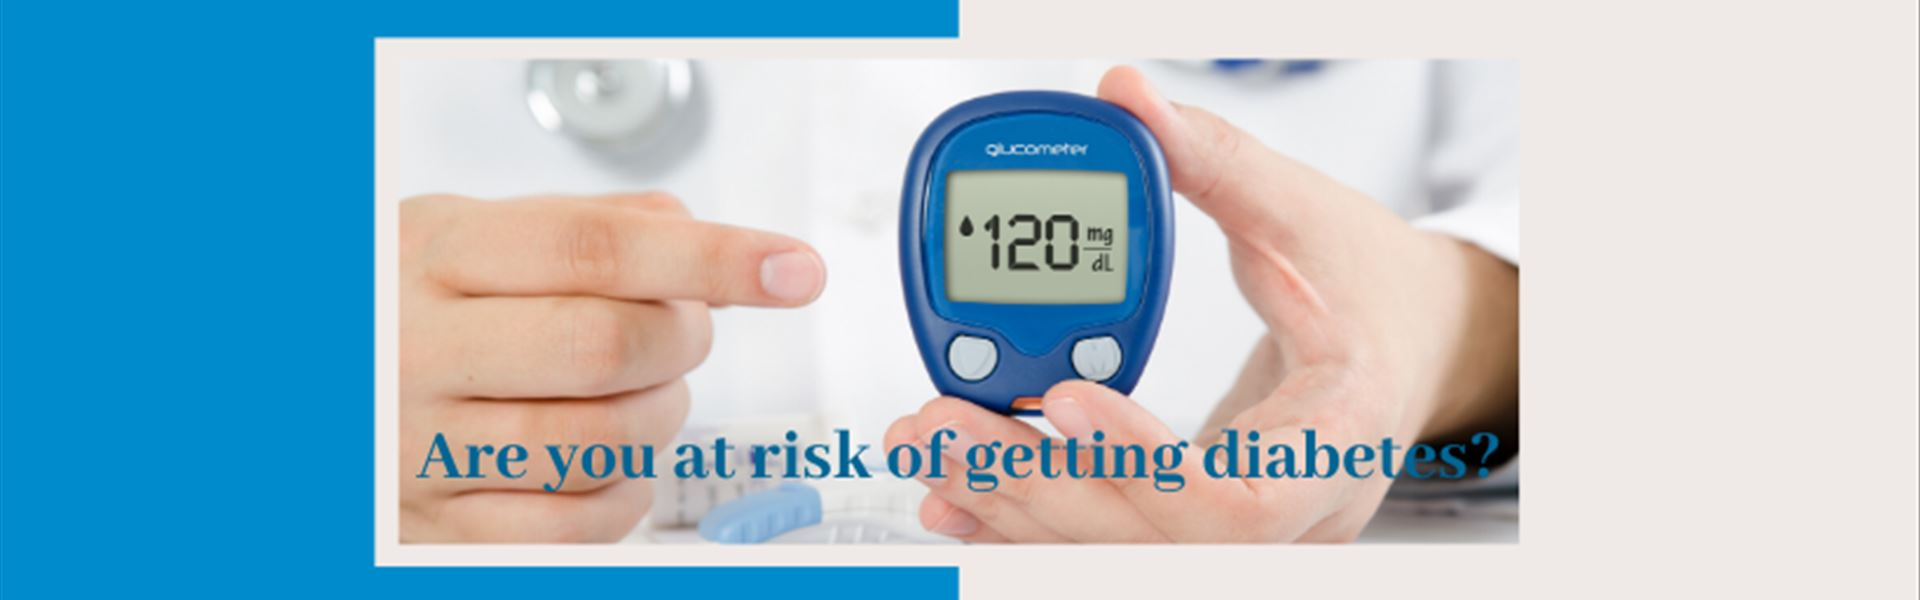 Are you at risk of diabetes?